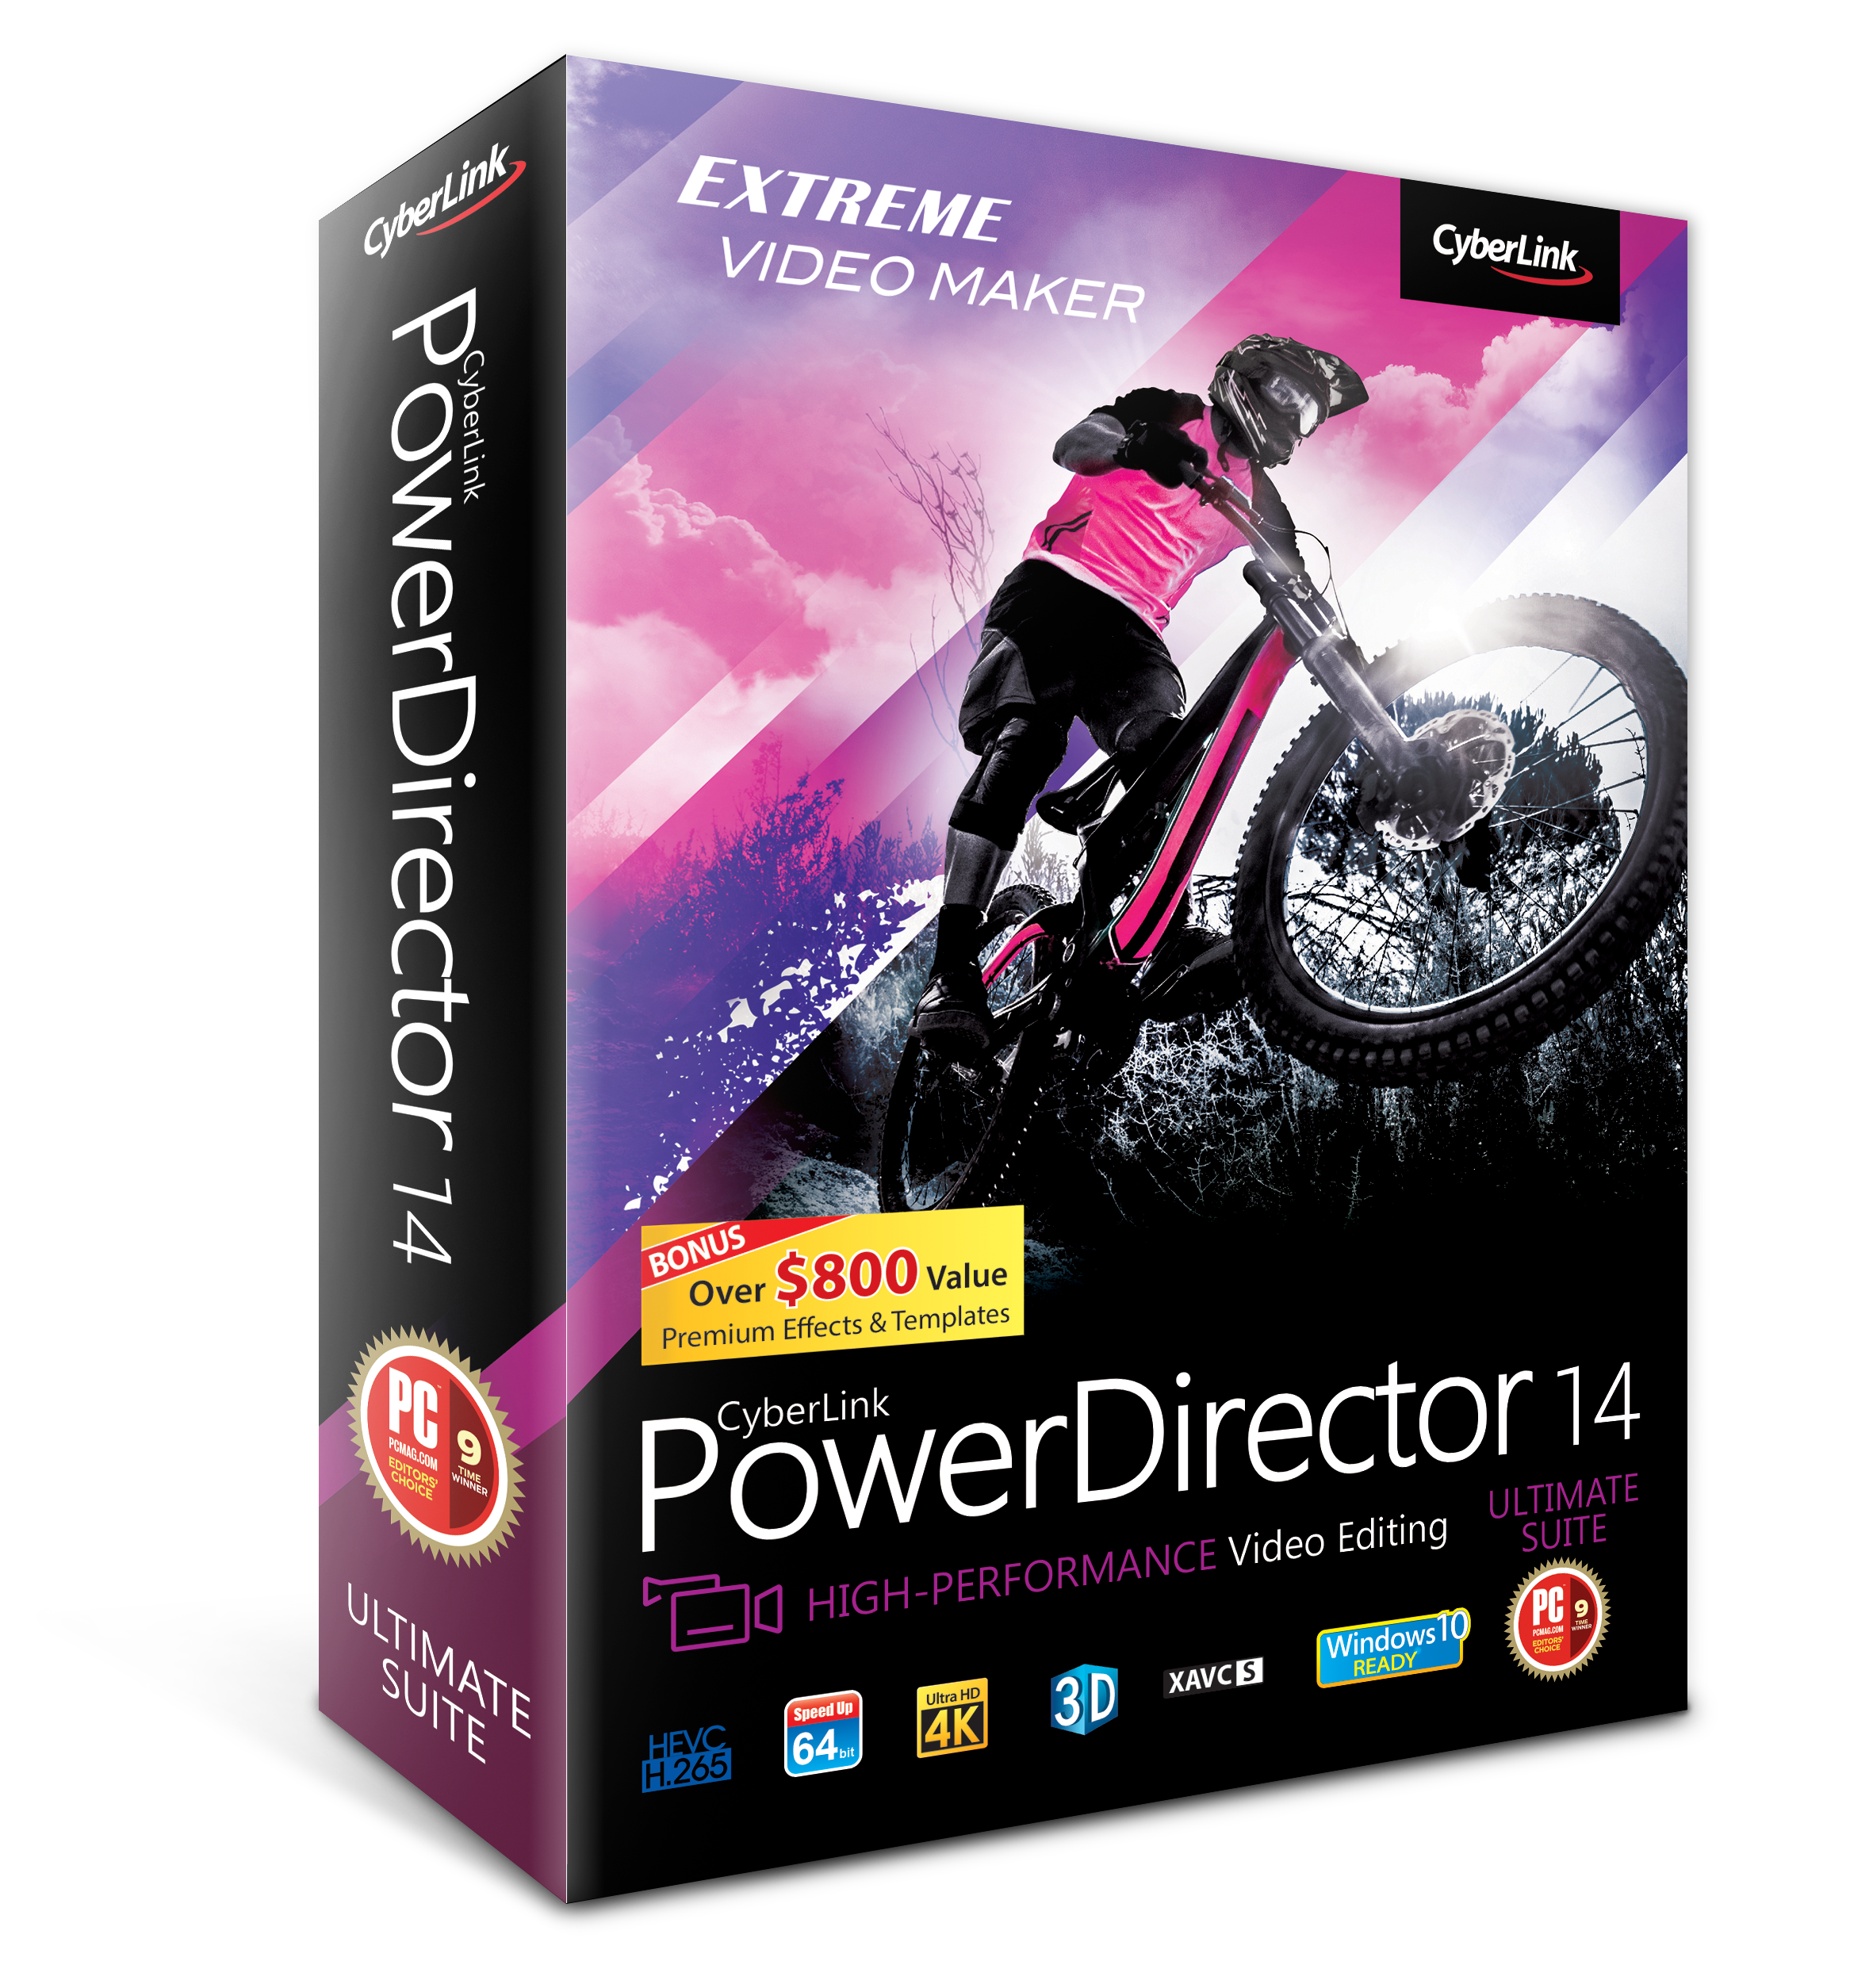 Upgrade to PowerDirector 14 Ultimate Suite from v.12/13 Ultimate Suite